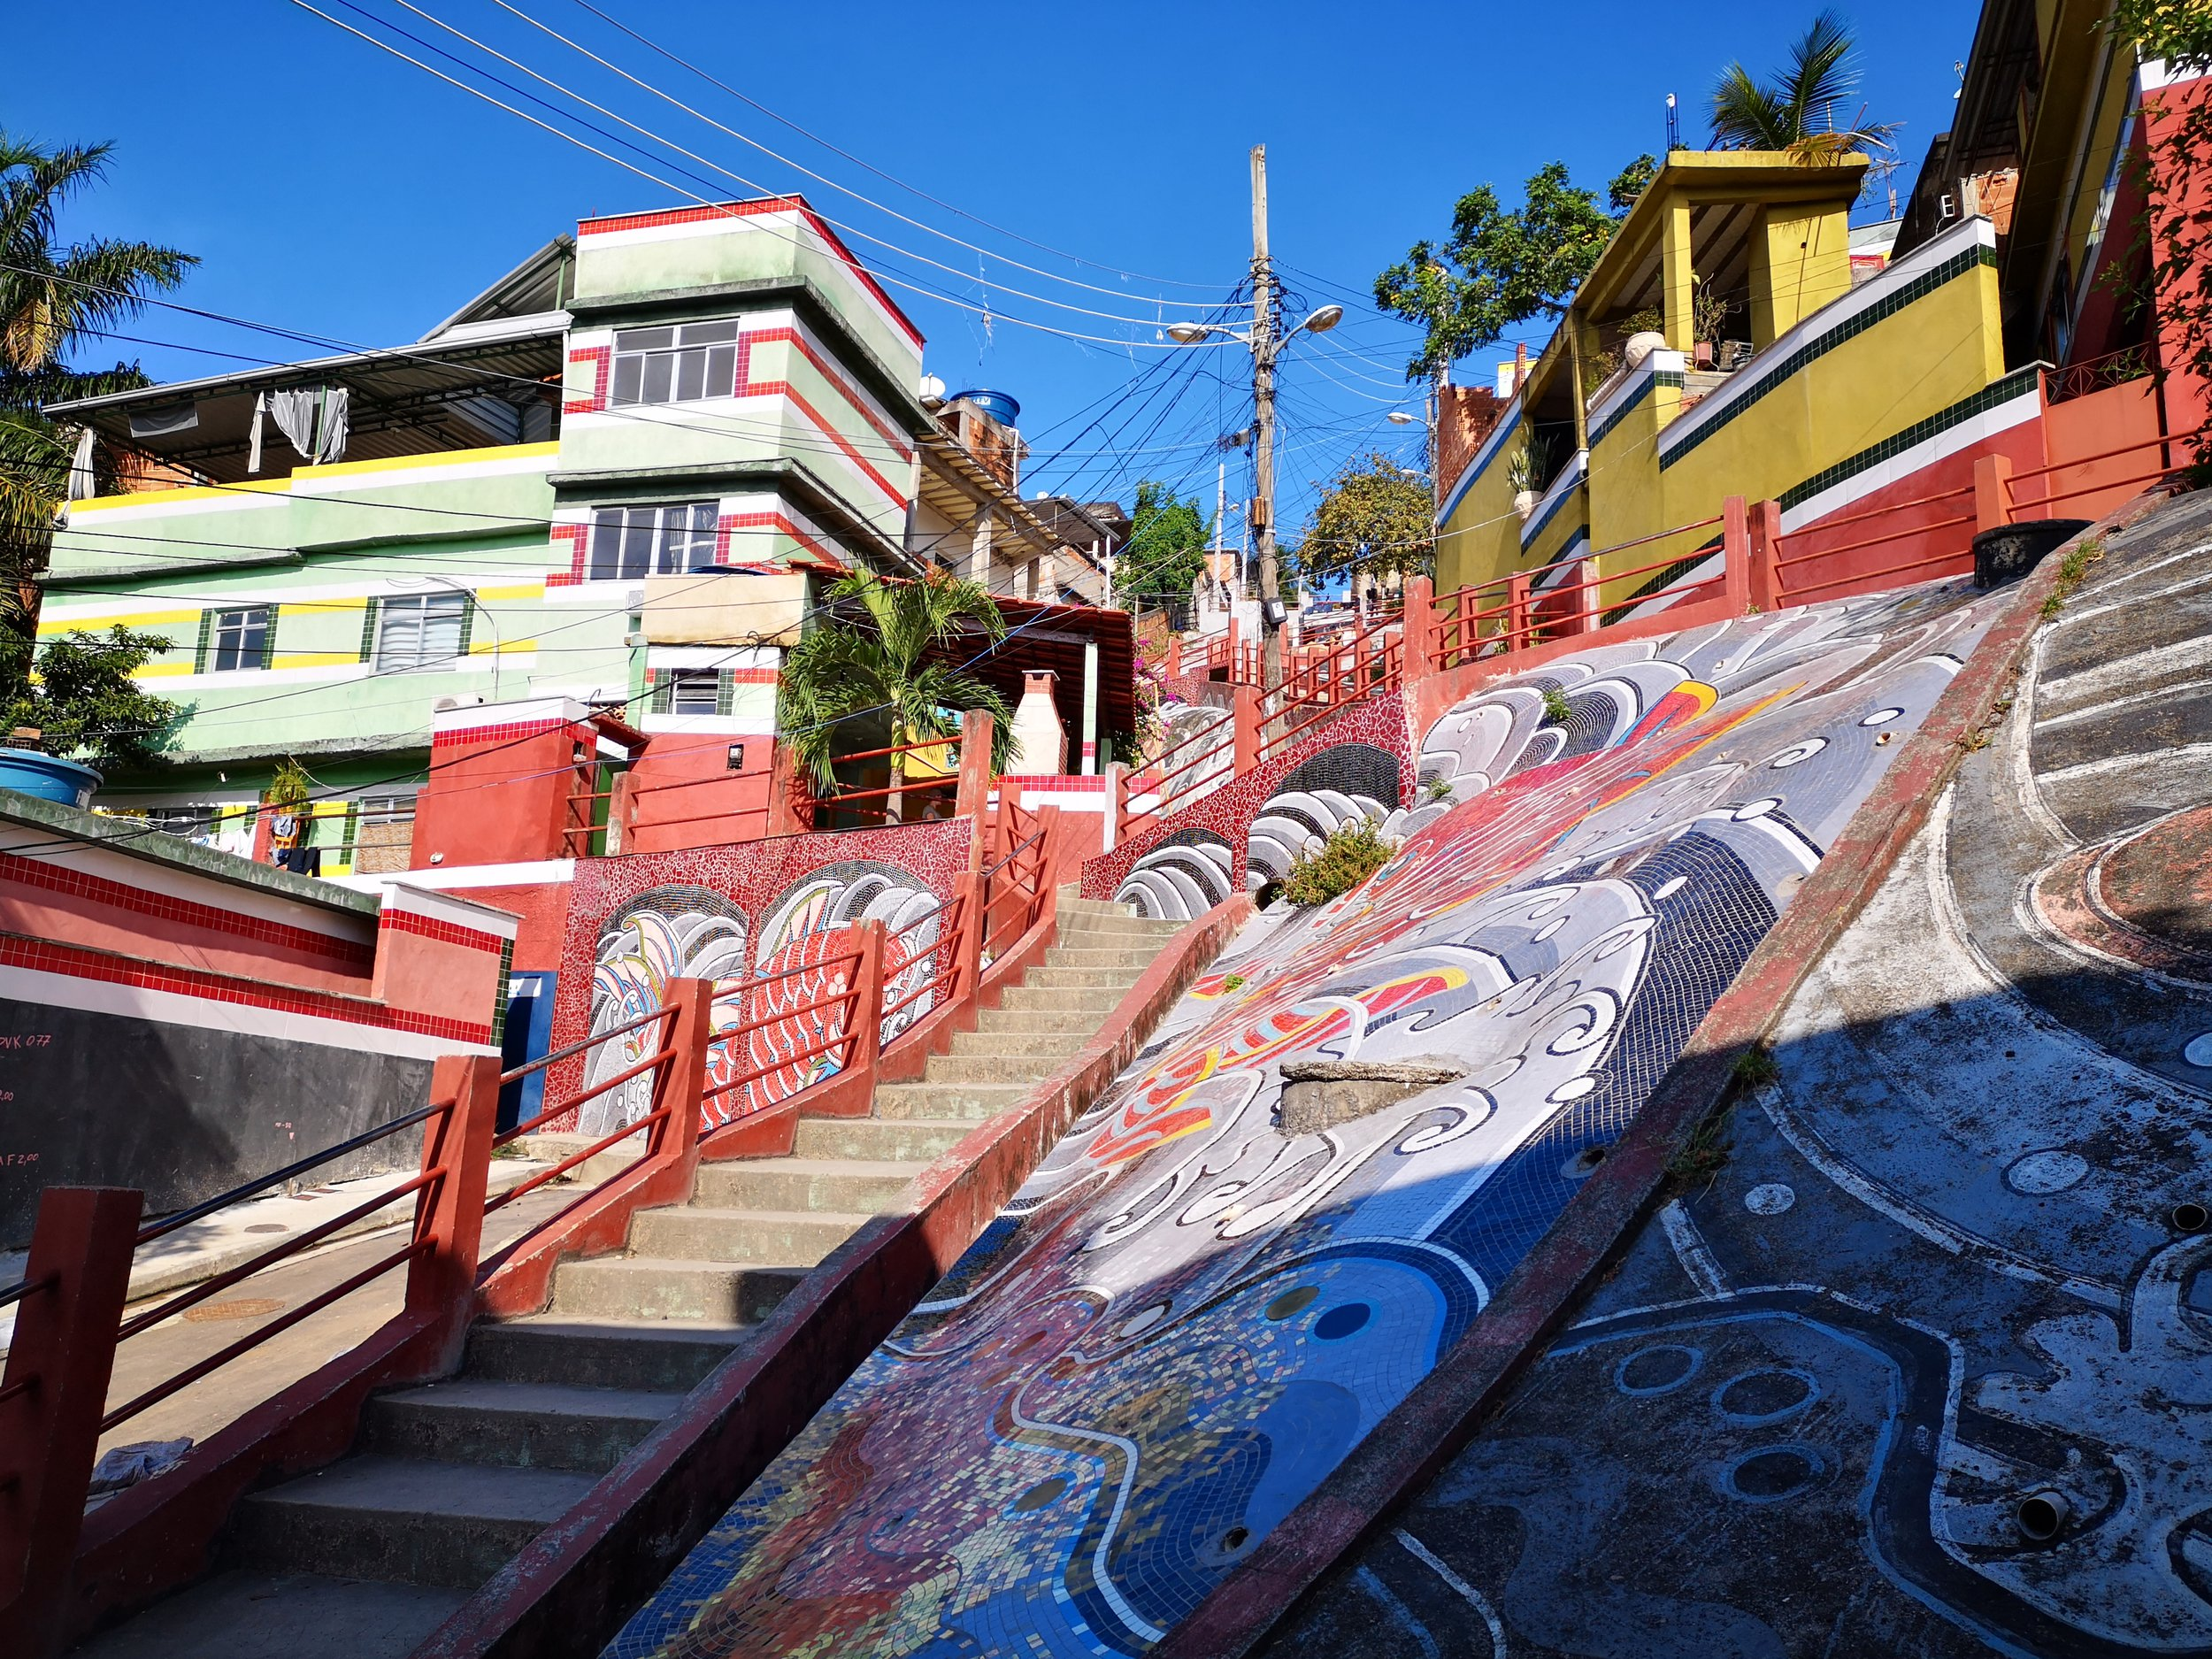 View from the bottom of the Rio Cruzeiro project, with the restored houses, 10-years-old paint and new mosaic all visible.